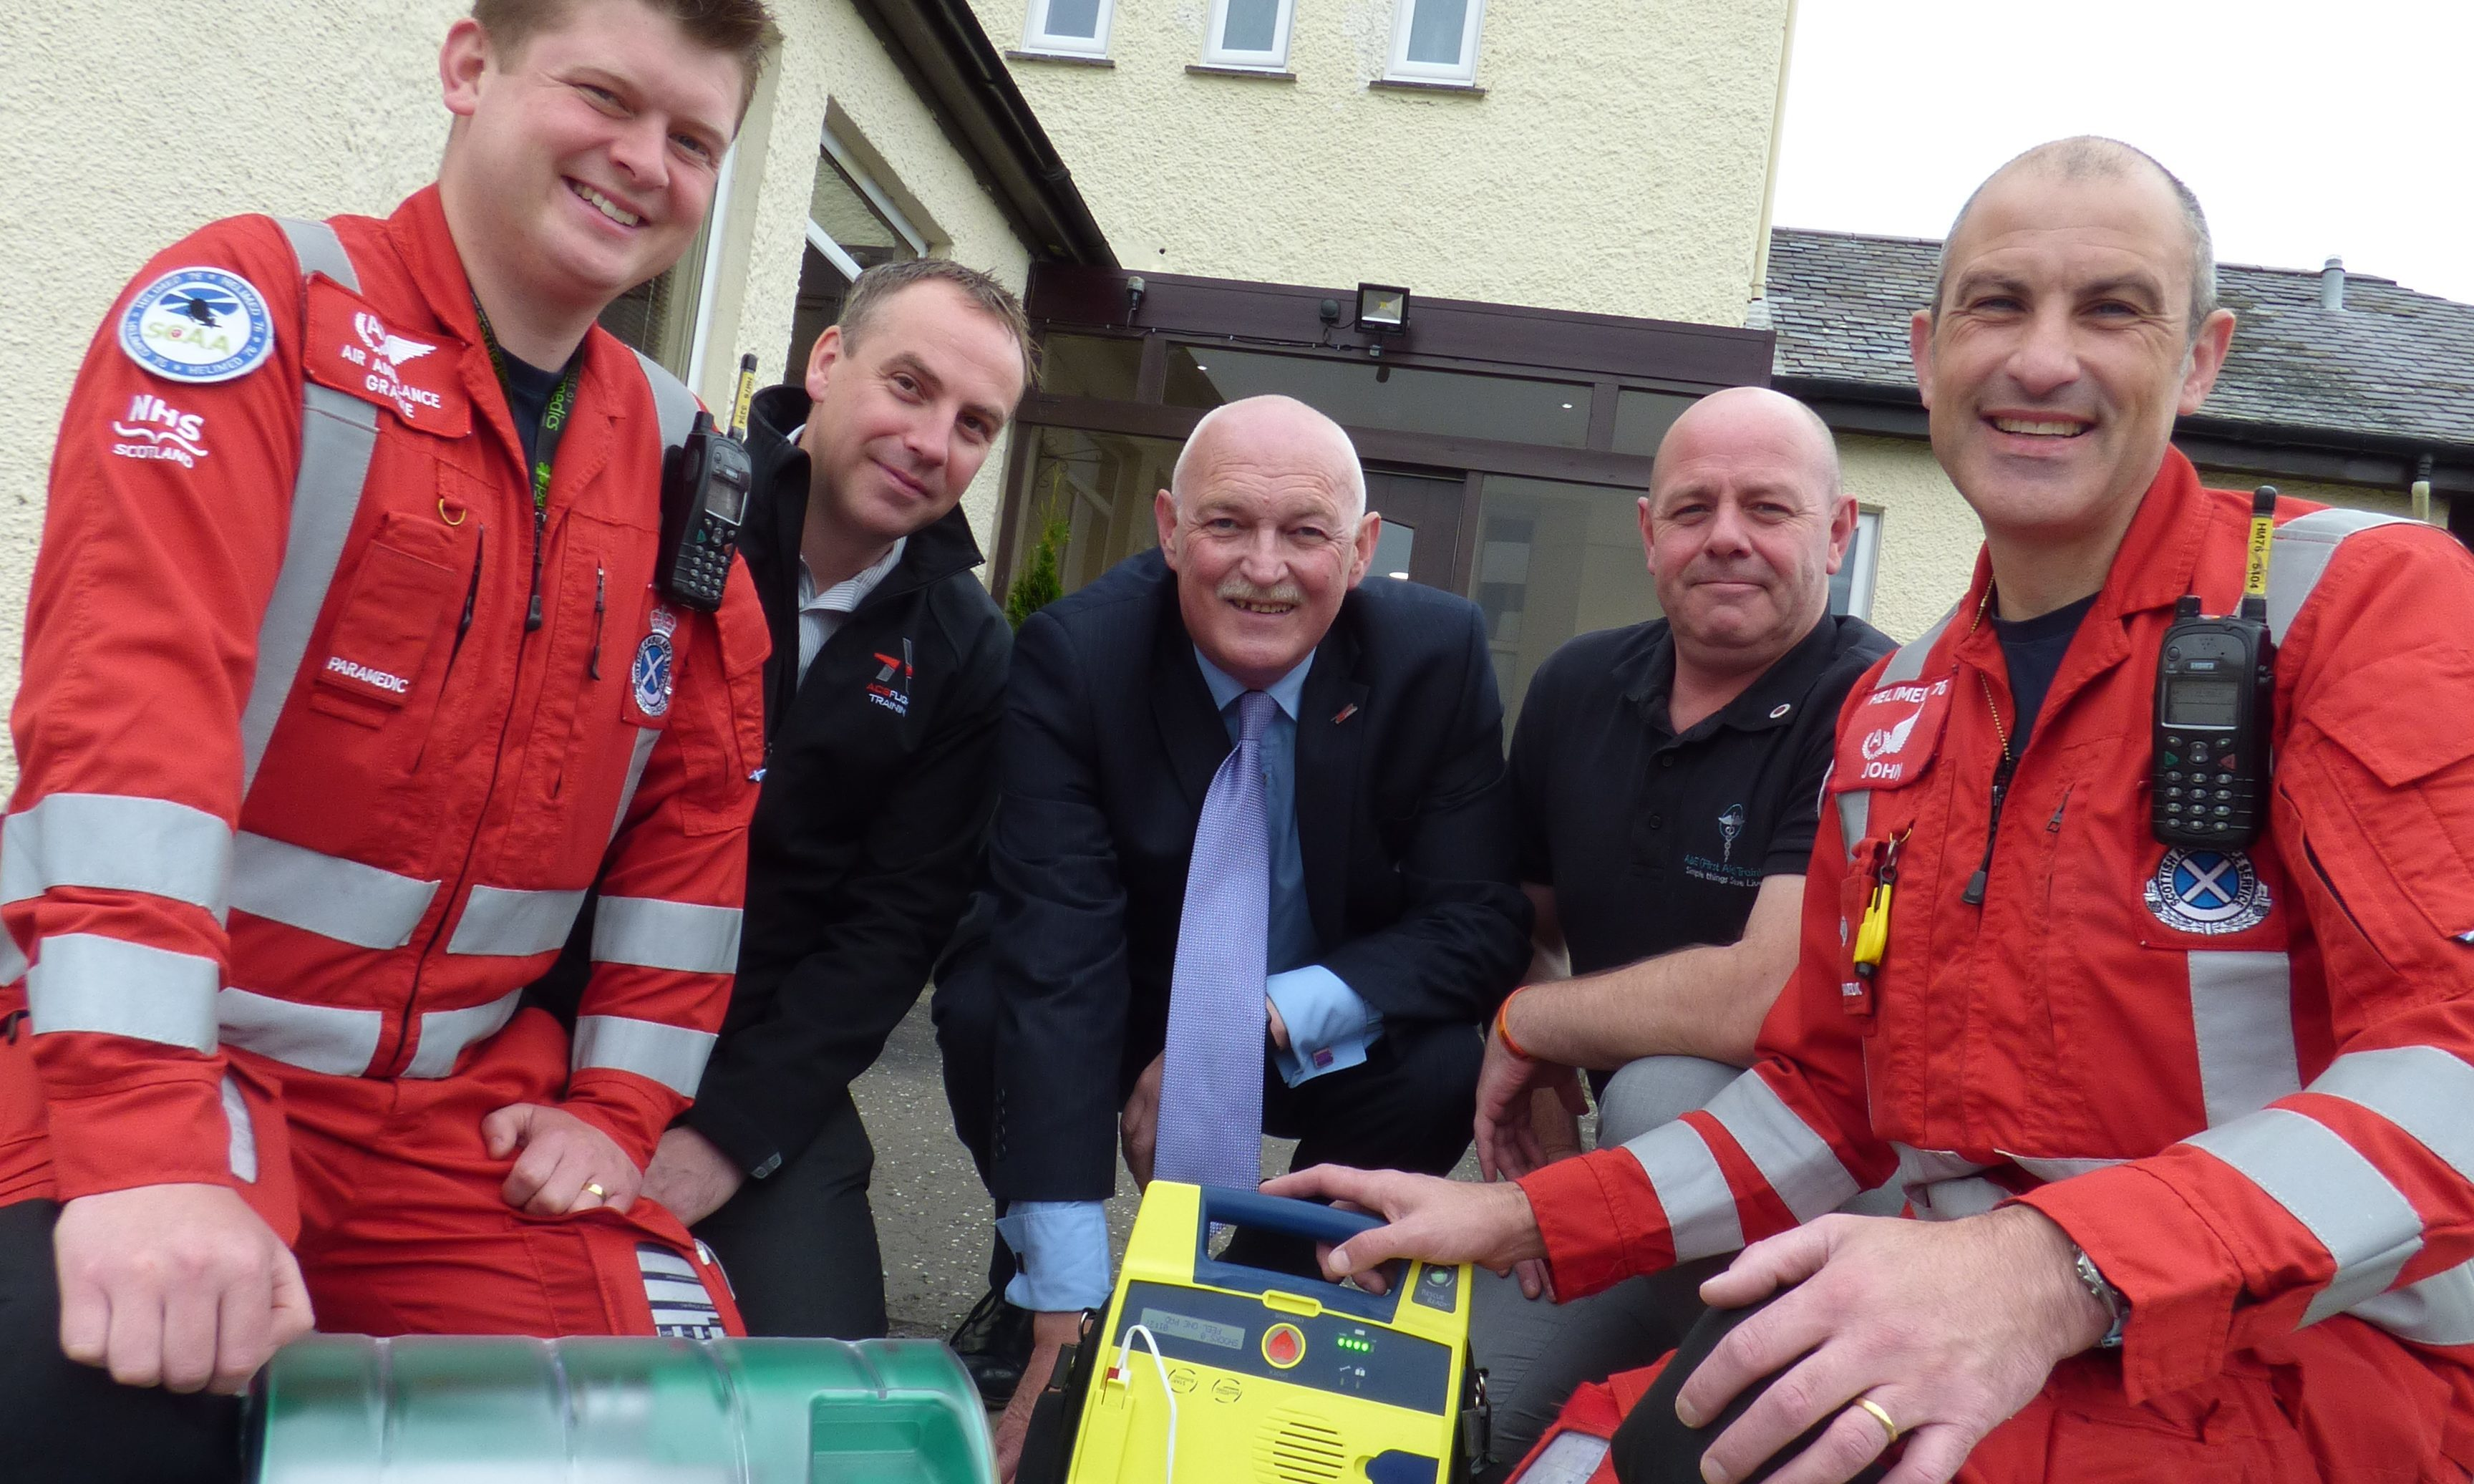 Steve Jeffs (centre) of Cardiac Science hands over the defibrillator to SCAA paramedic Graeme Hay (left) and lead paramedic John Pritchard (right) along with Graeme Frater of Perth Airport operators ACS Aviation (second from left) and Alan Moffat of A & E (First Aid) Training (second from right).